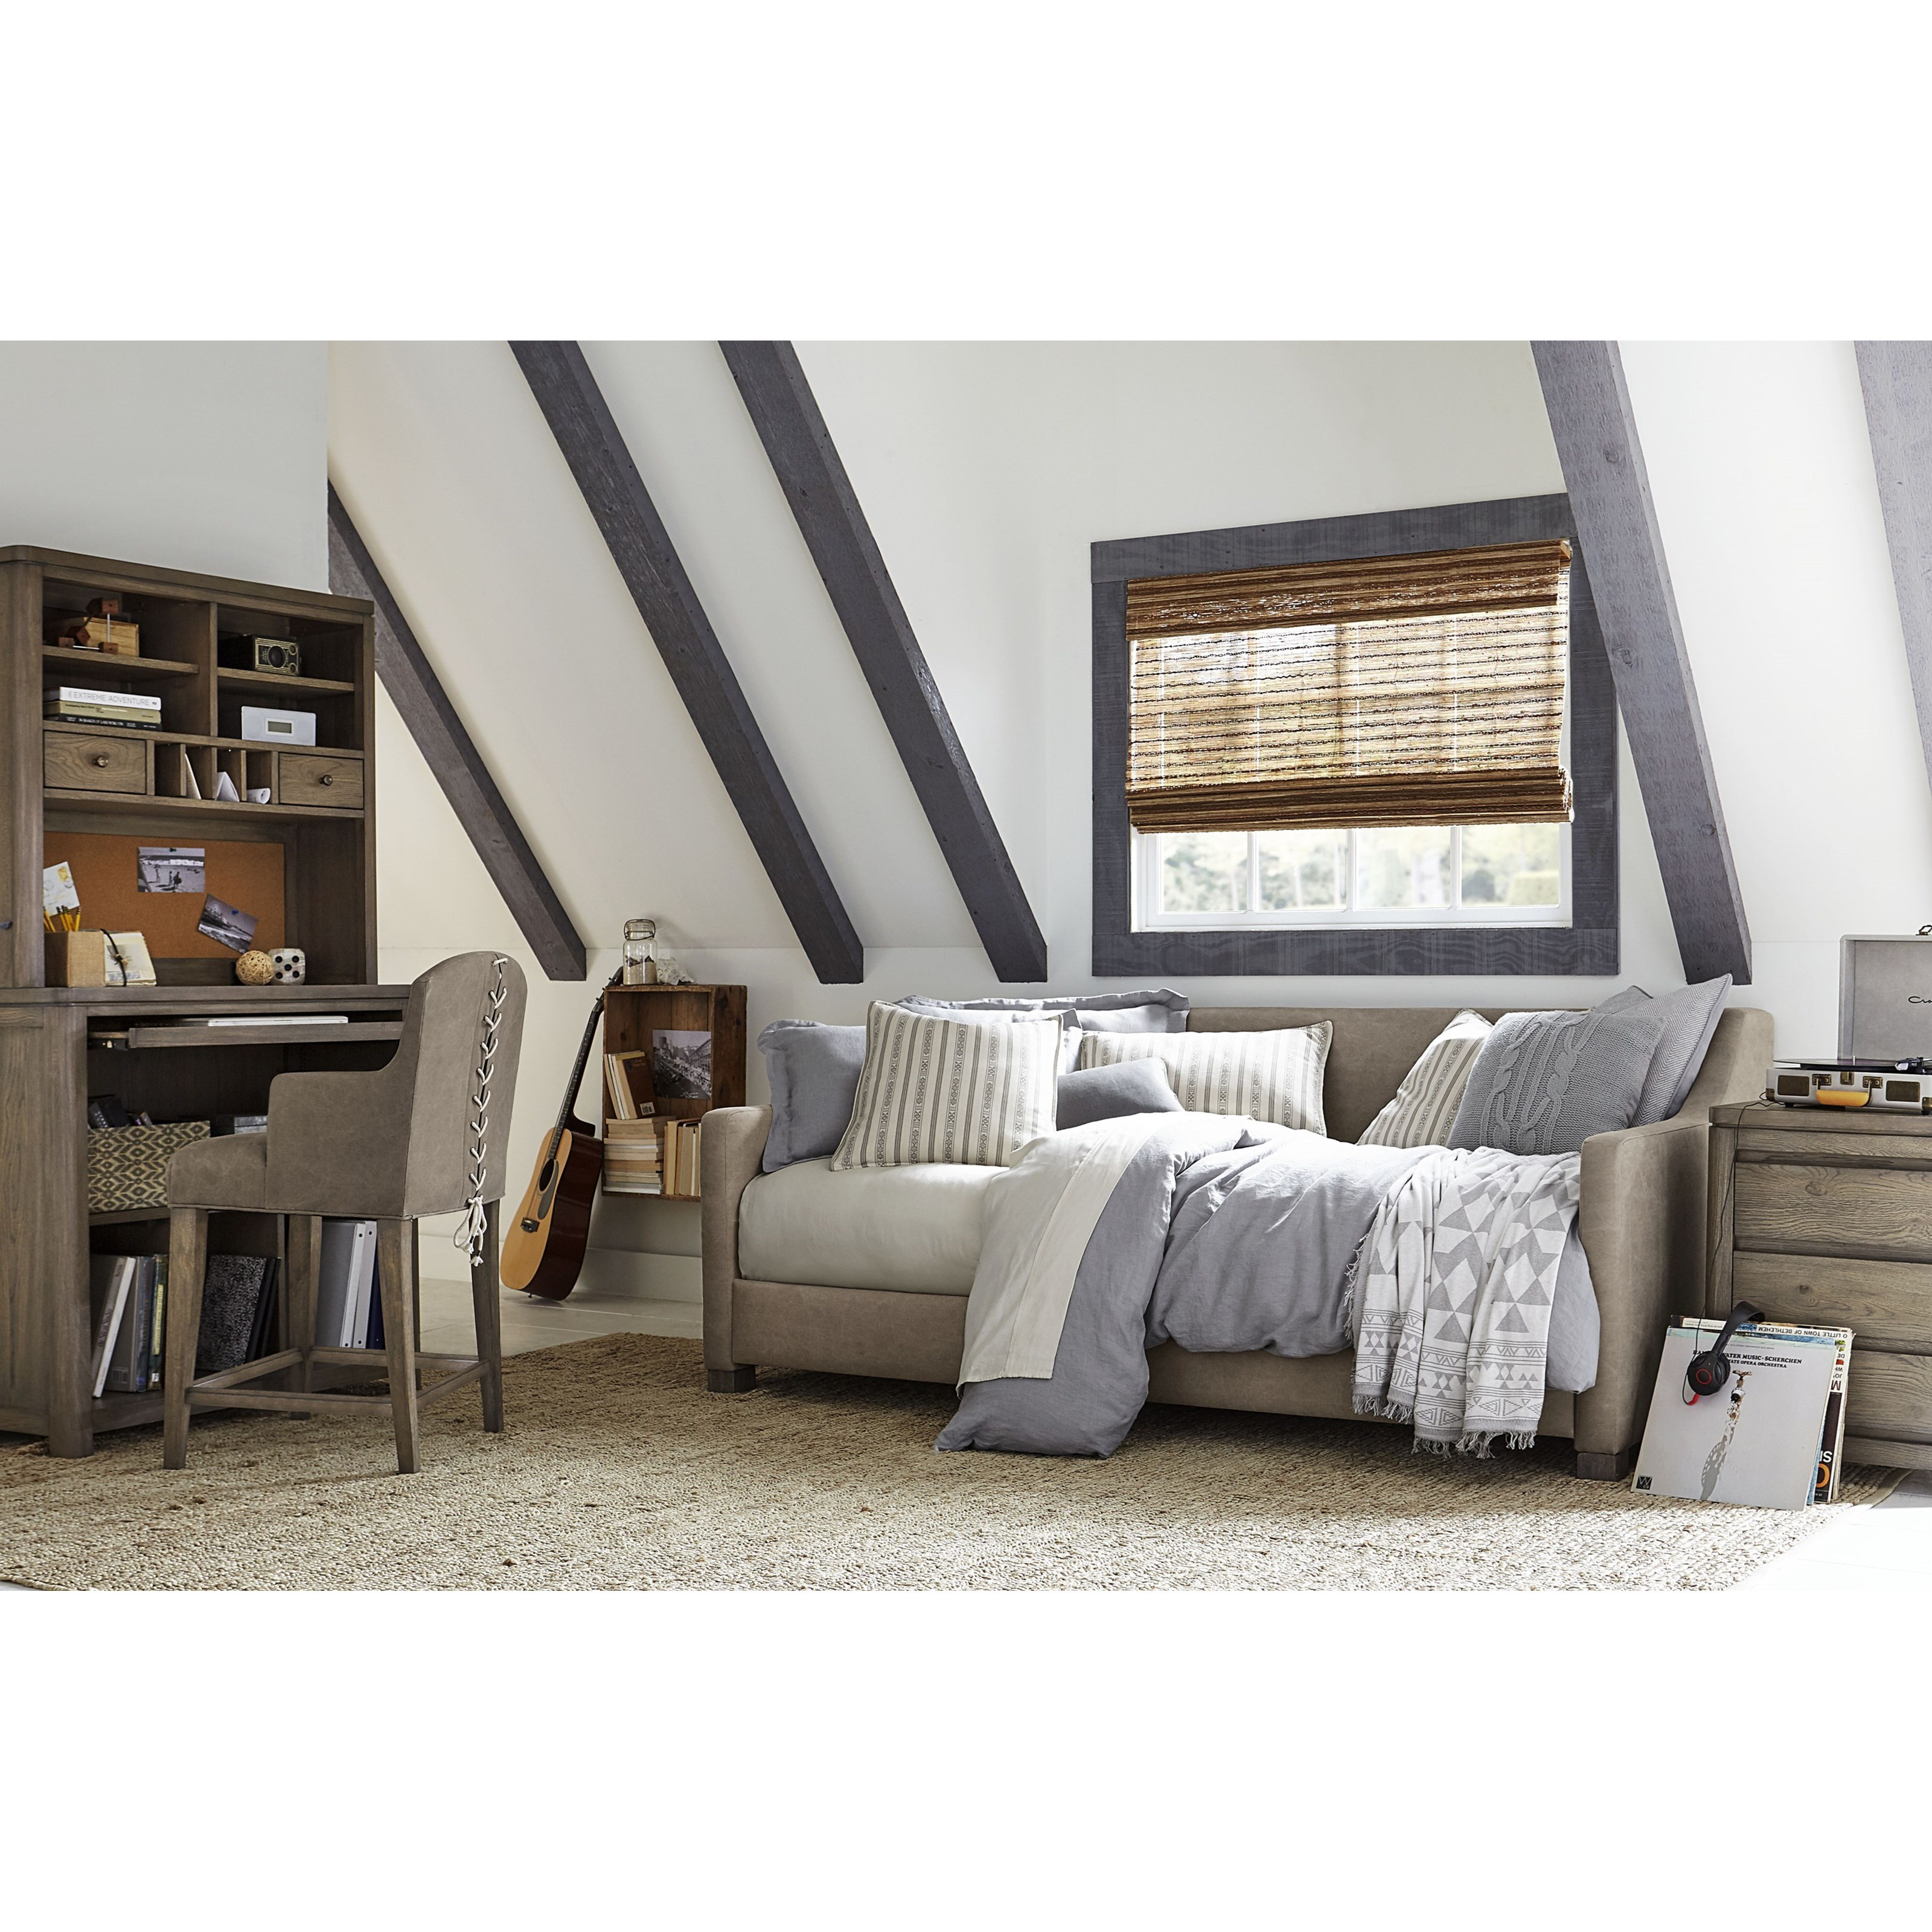 Legacy Classic Kids Big Sky by Wendy Bellissimo Twin Bedroom Group - Item Number: 6810 T Bedroom Group 1